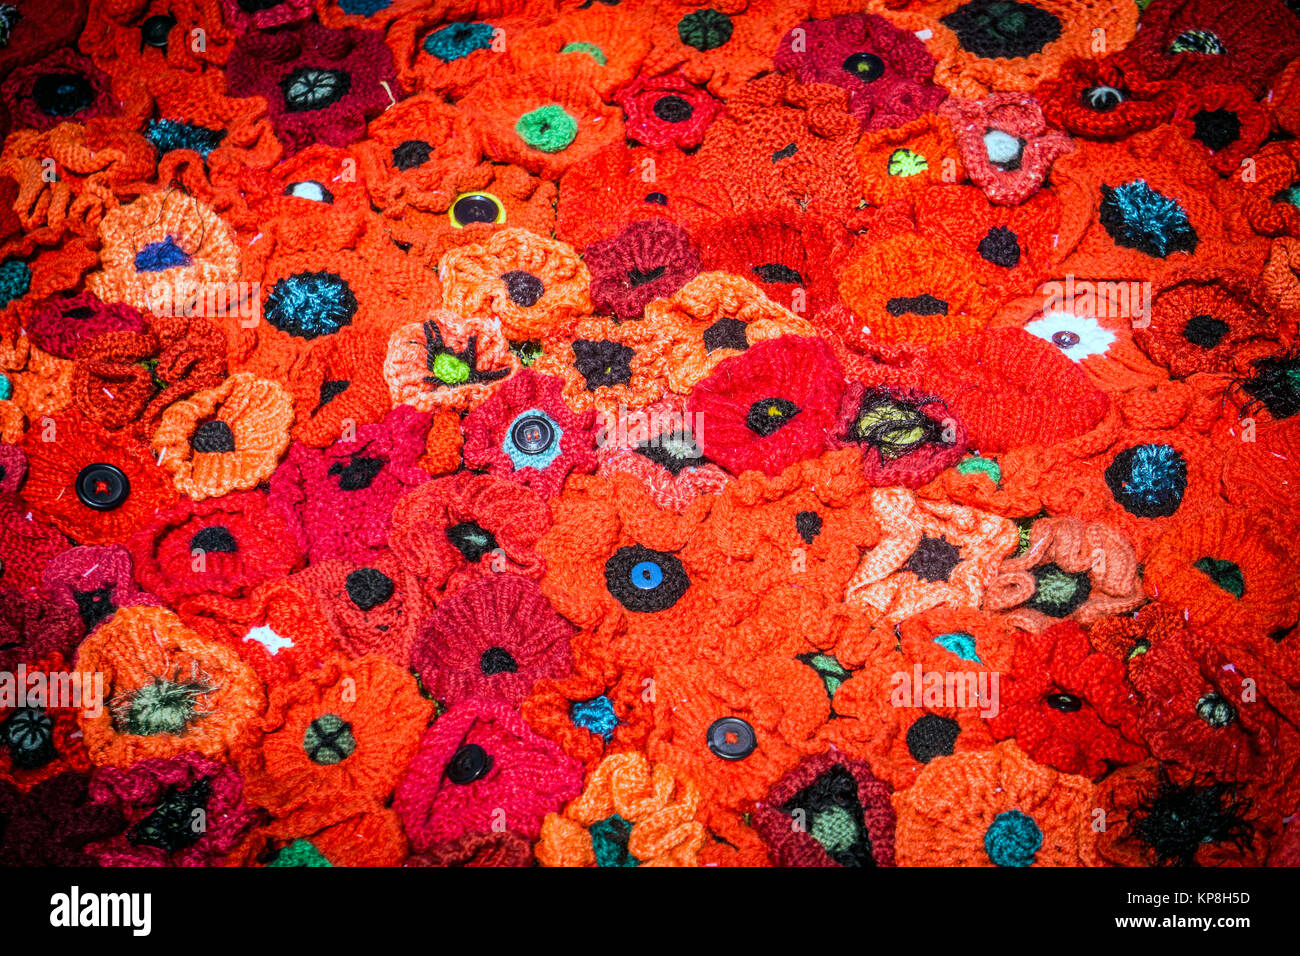 Artificial poppies for remembering fallen Australian soldiers during the WWI. - Stock Image